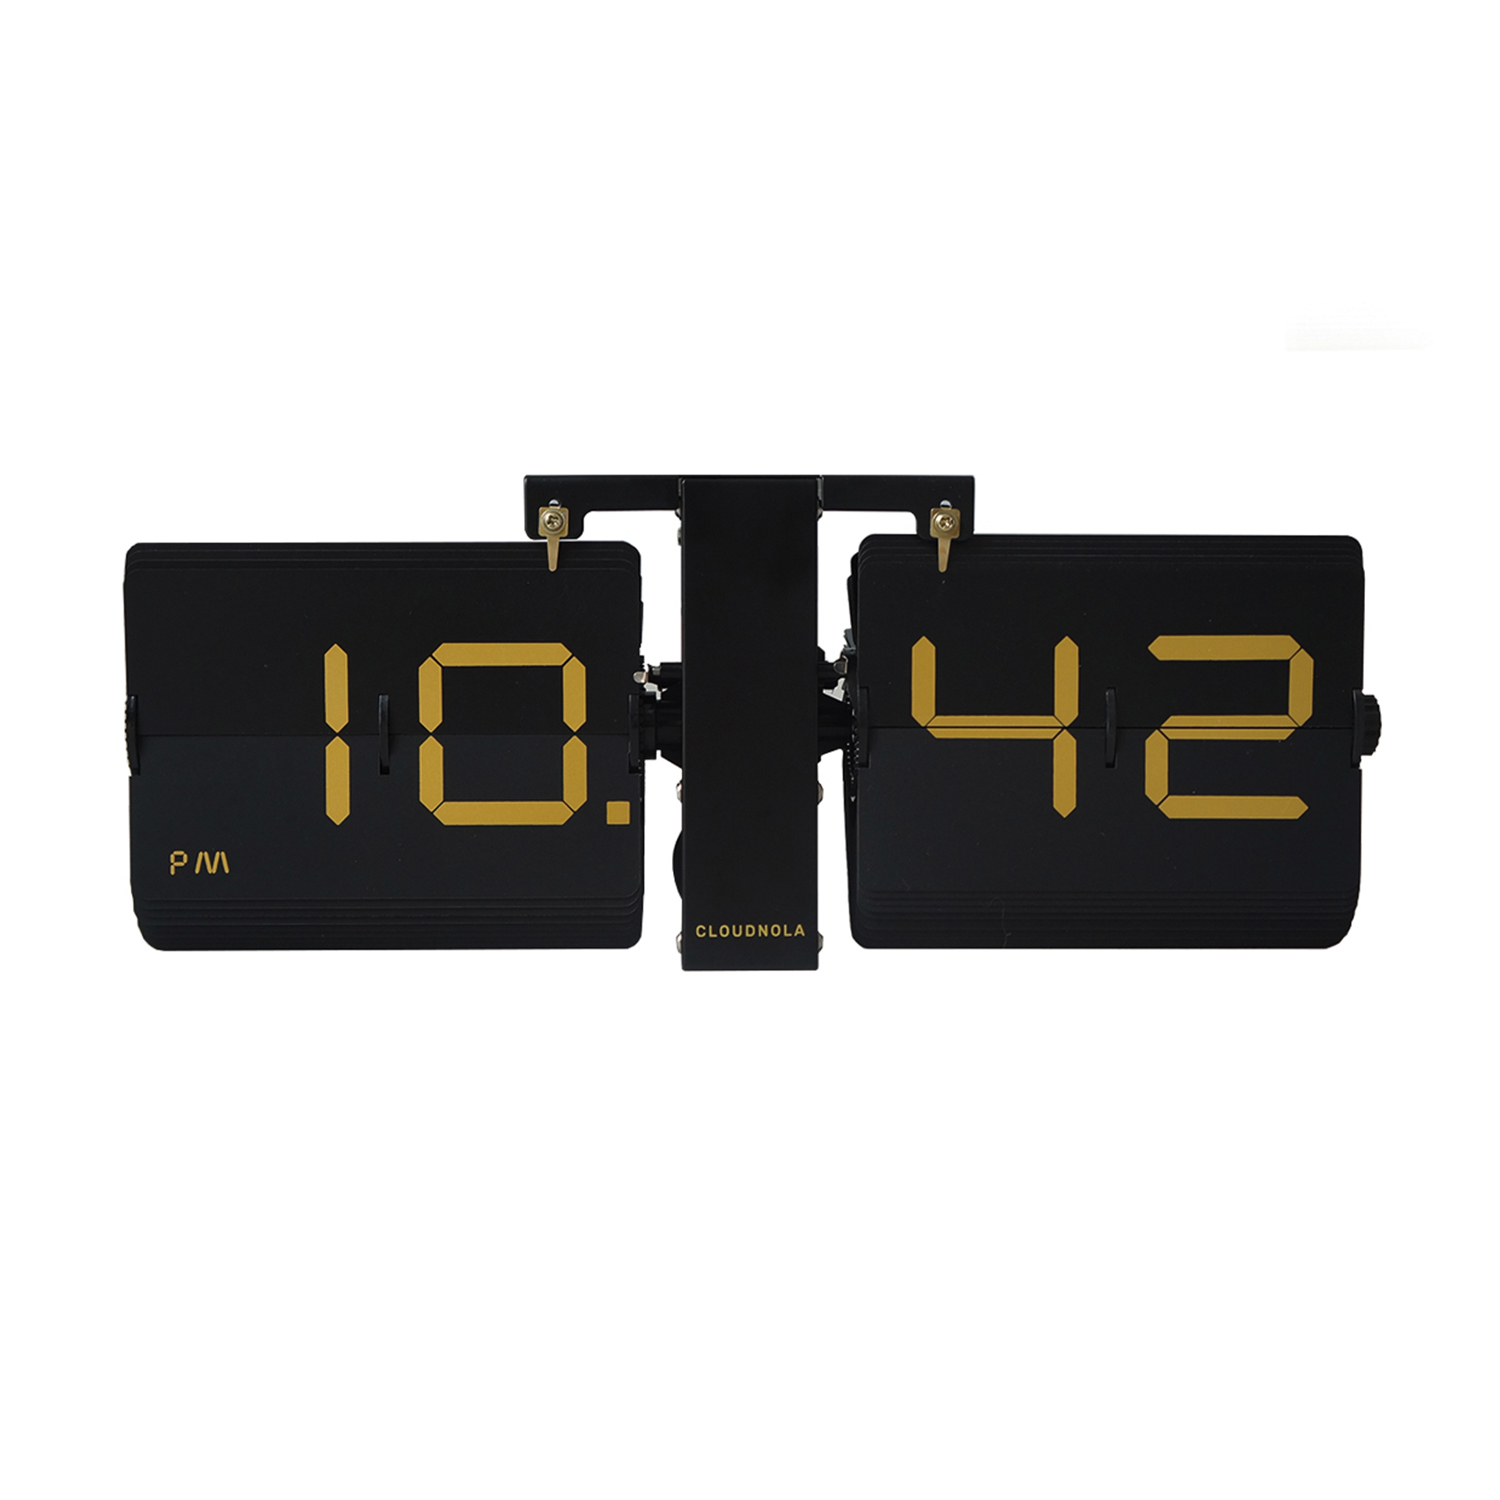 Cloudnola Flipclock DeLuxe Black/Gold